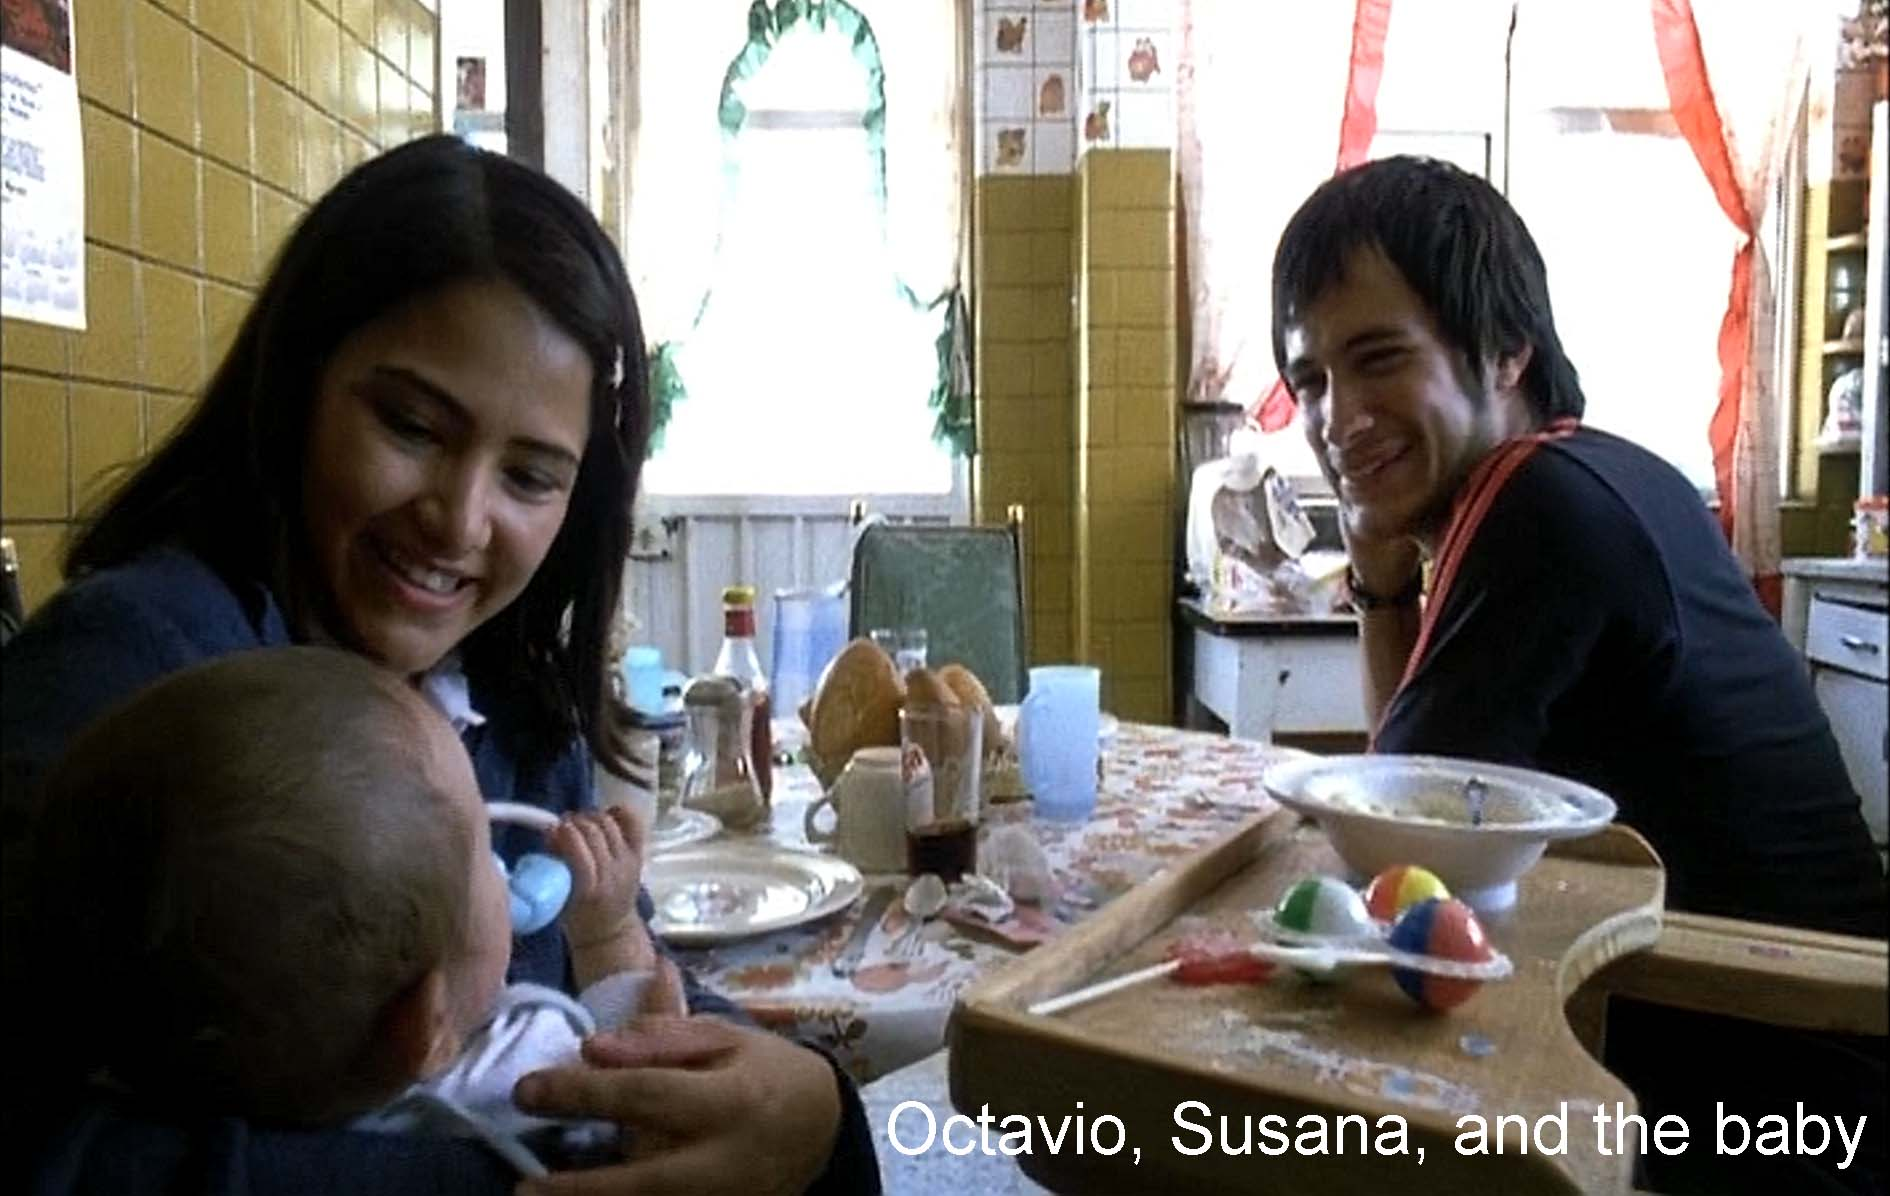 Octavio, Susana, and the baby